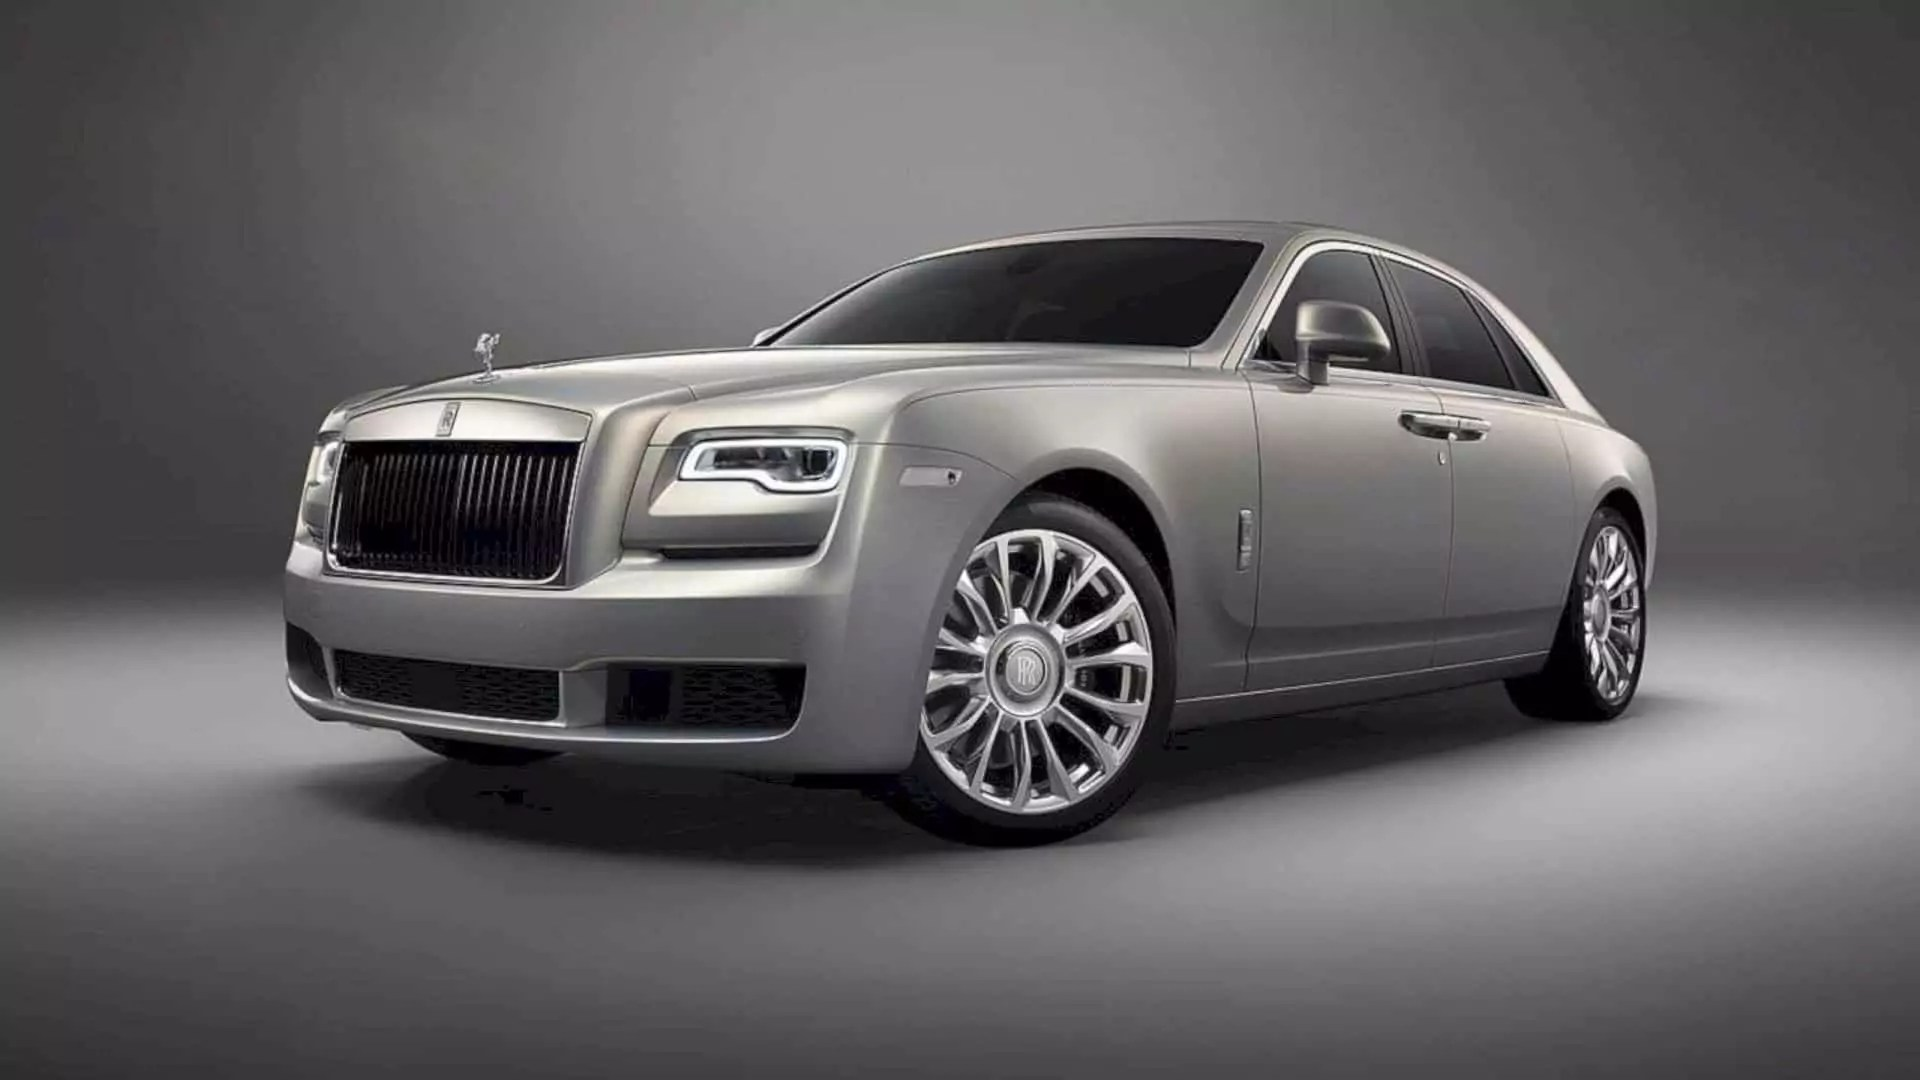 Rolls-Royce Silver Ghost: The Best Car in The World Meet The Original 1906 Silver Ghost Concept